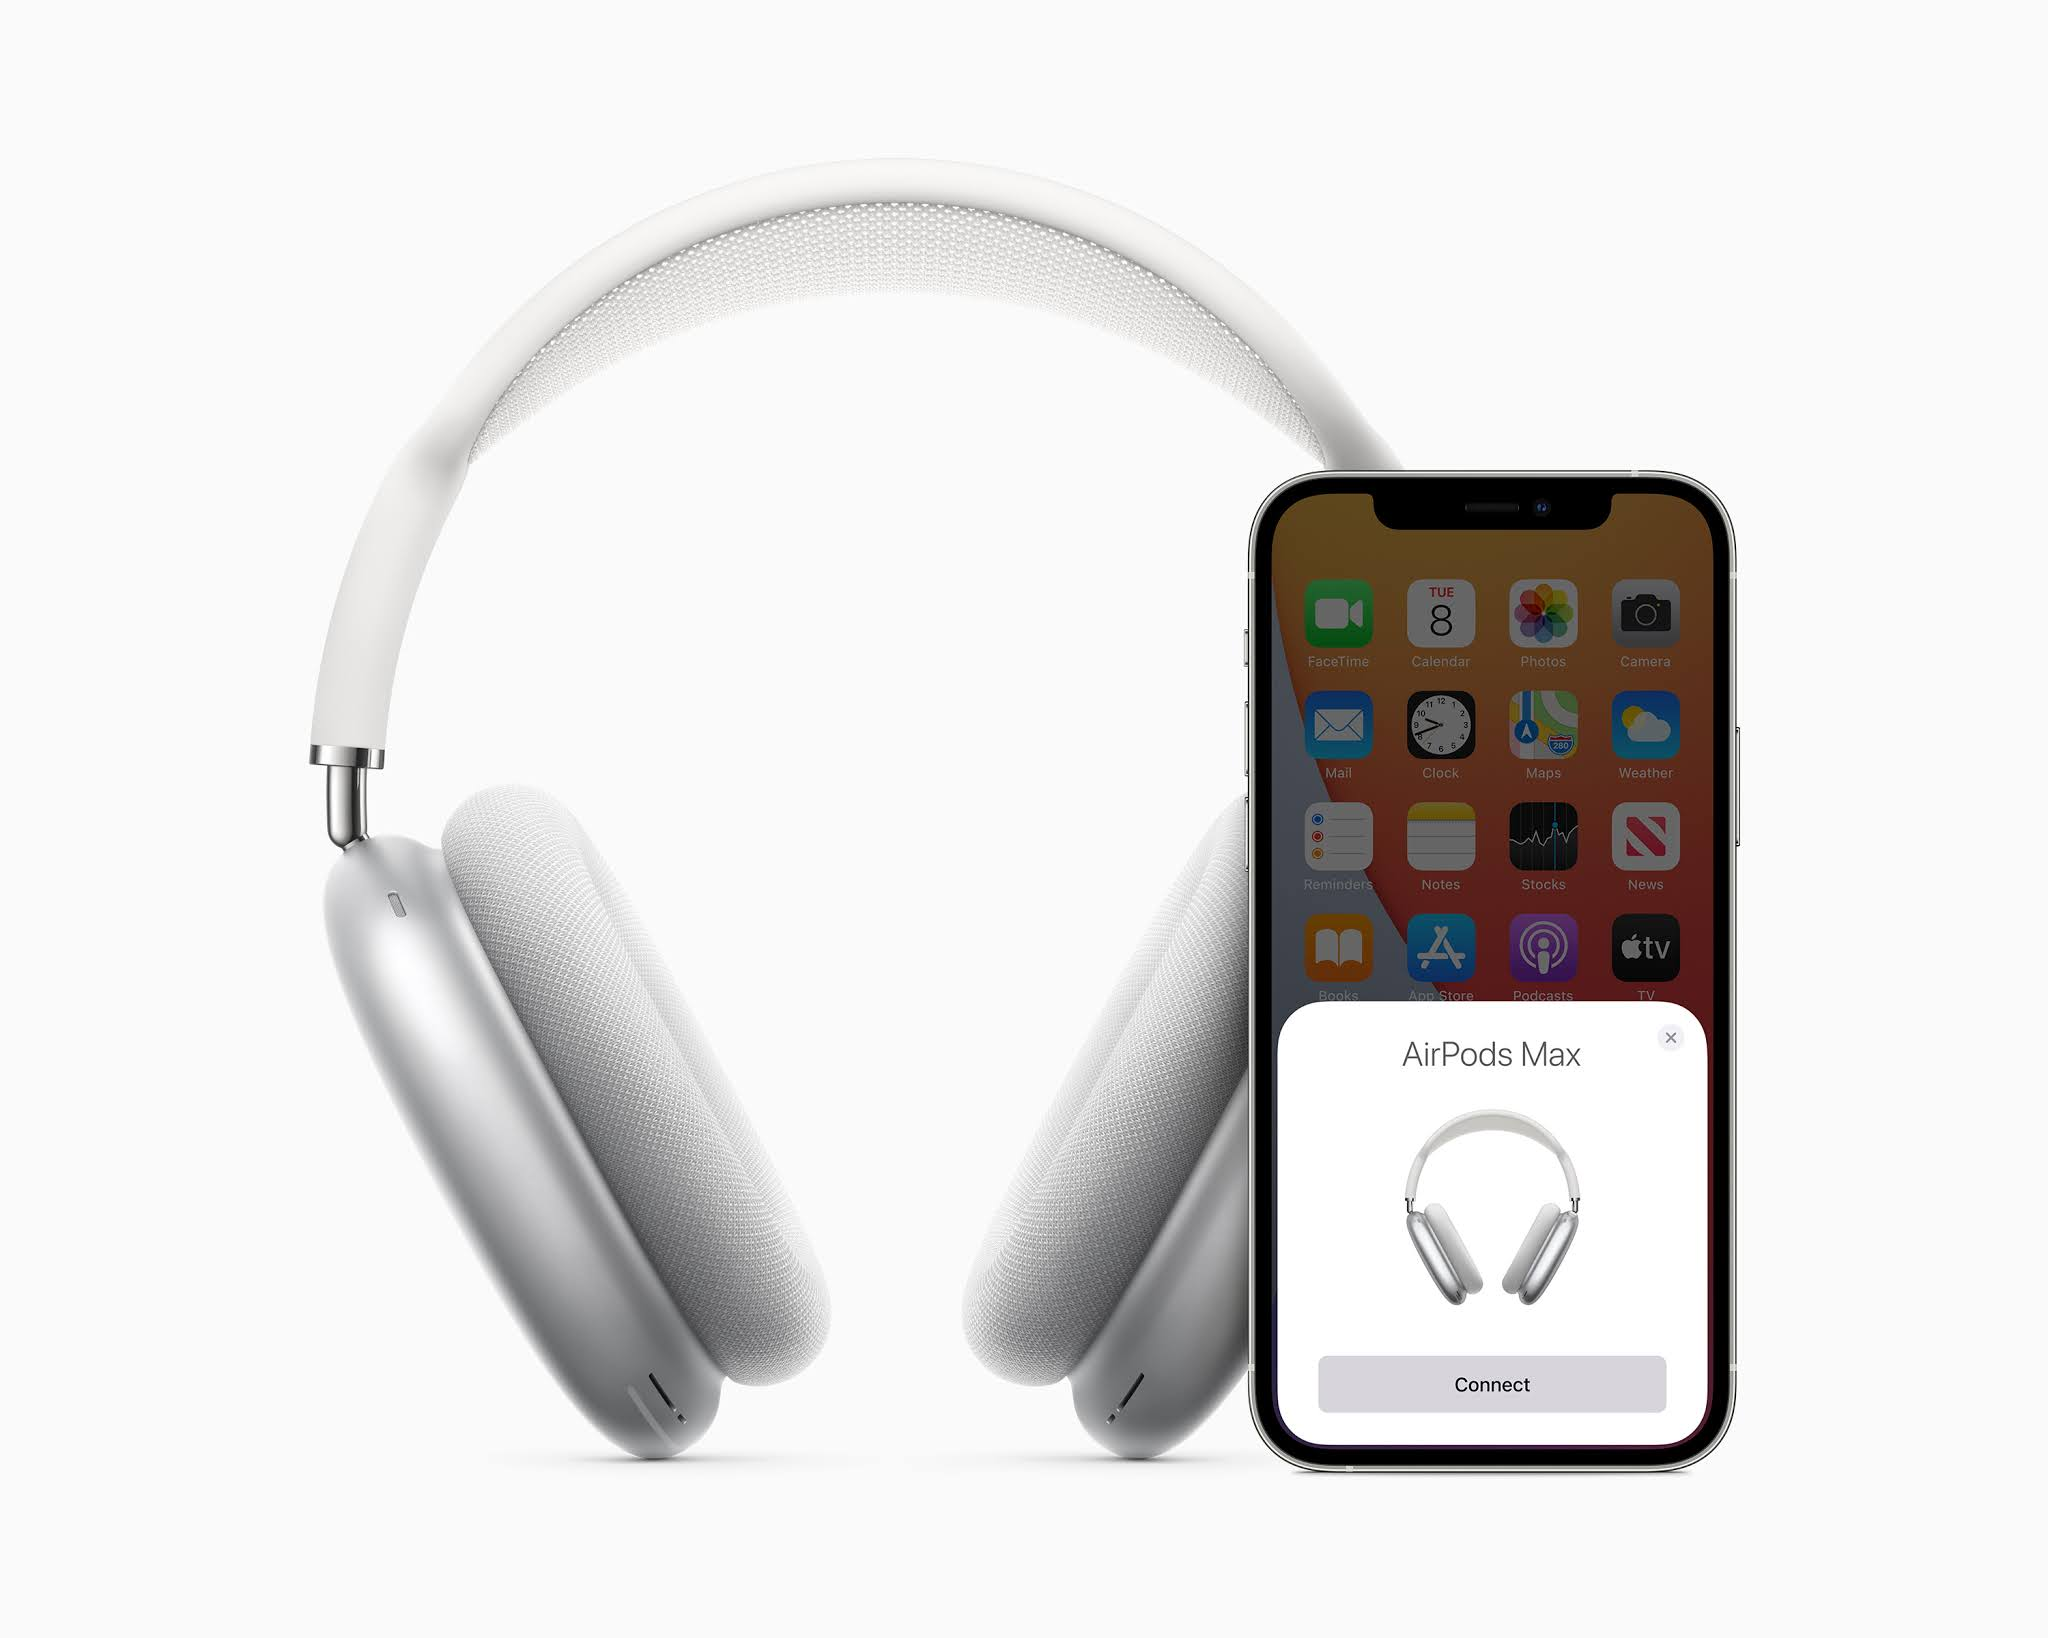 Nuovi Apple AirPods Max | Video